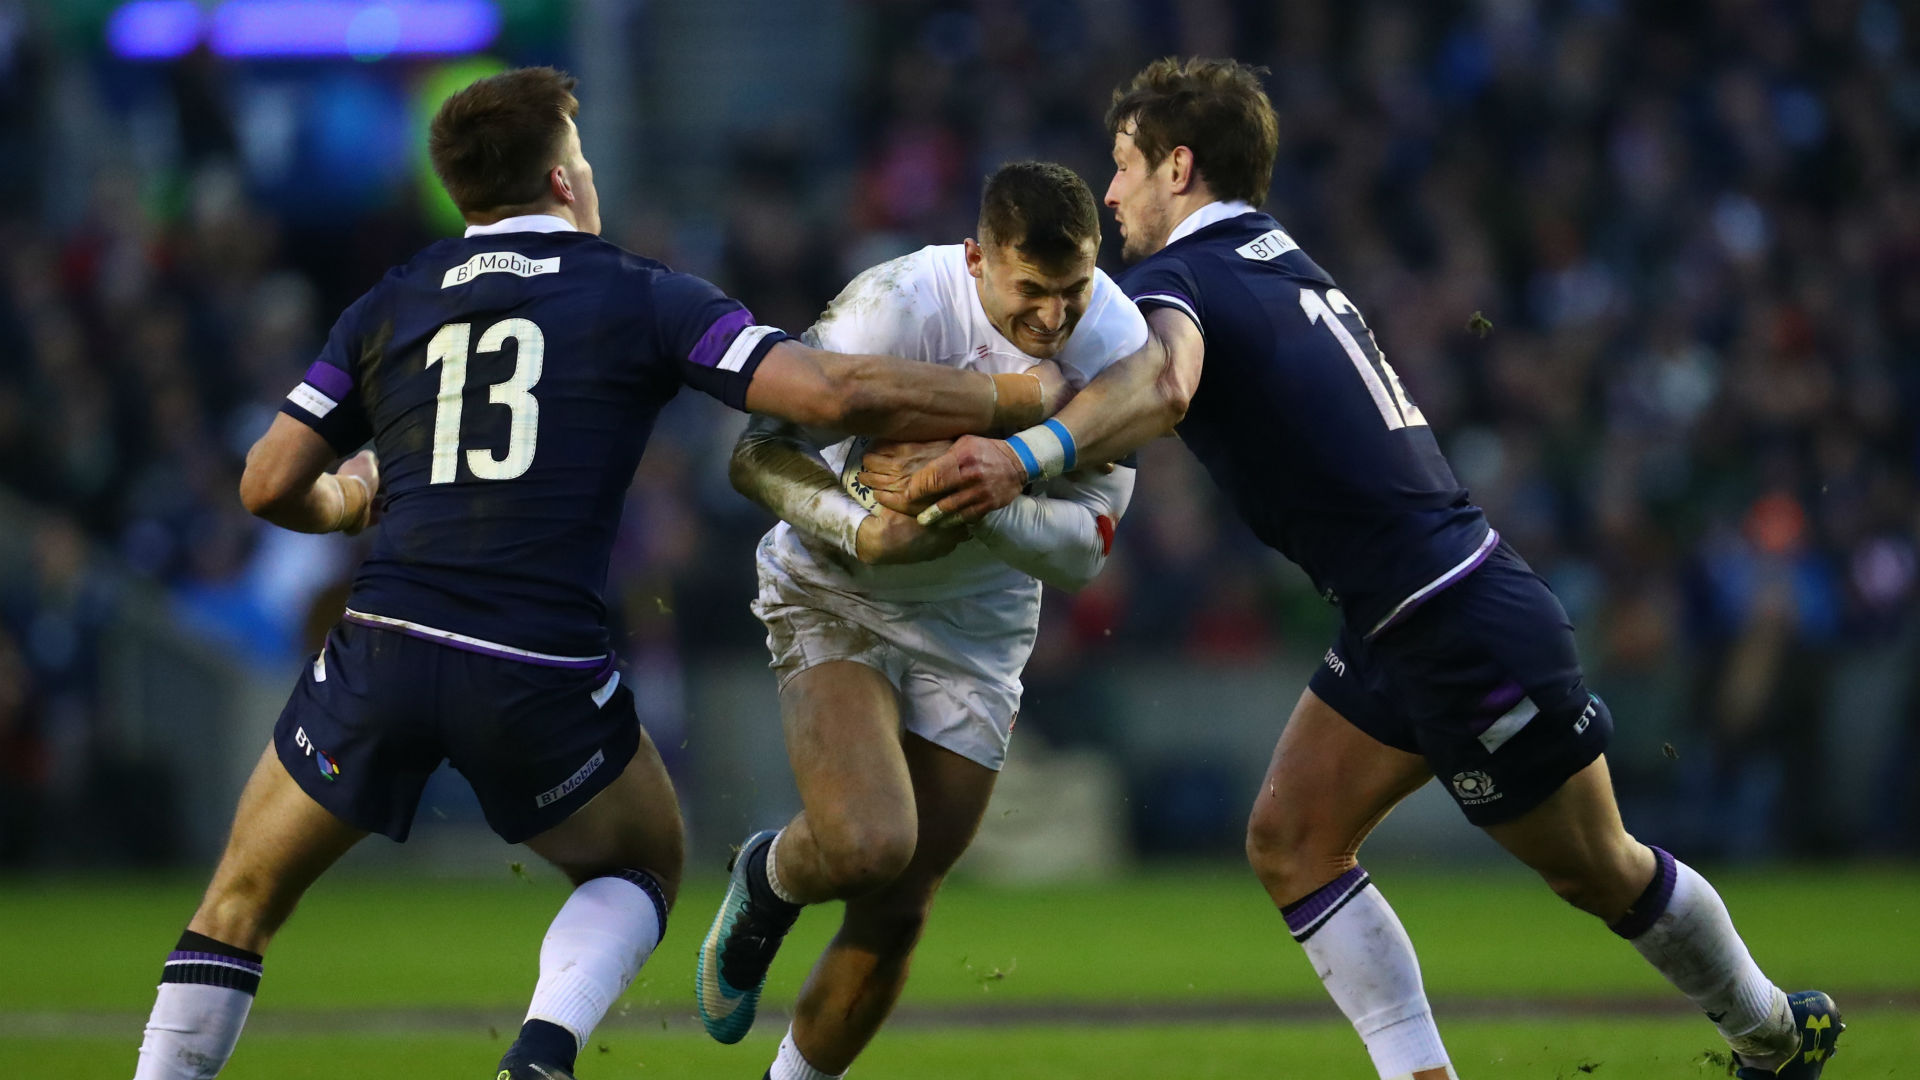 Six Nations: Ireland secure bonus-point win over Scotland